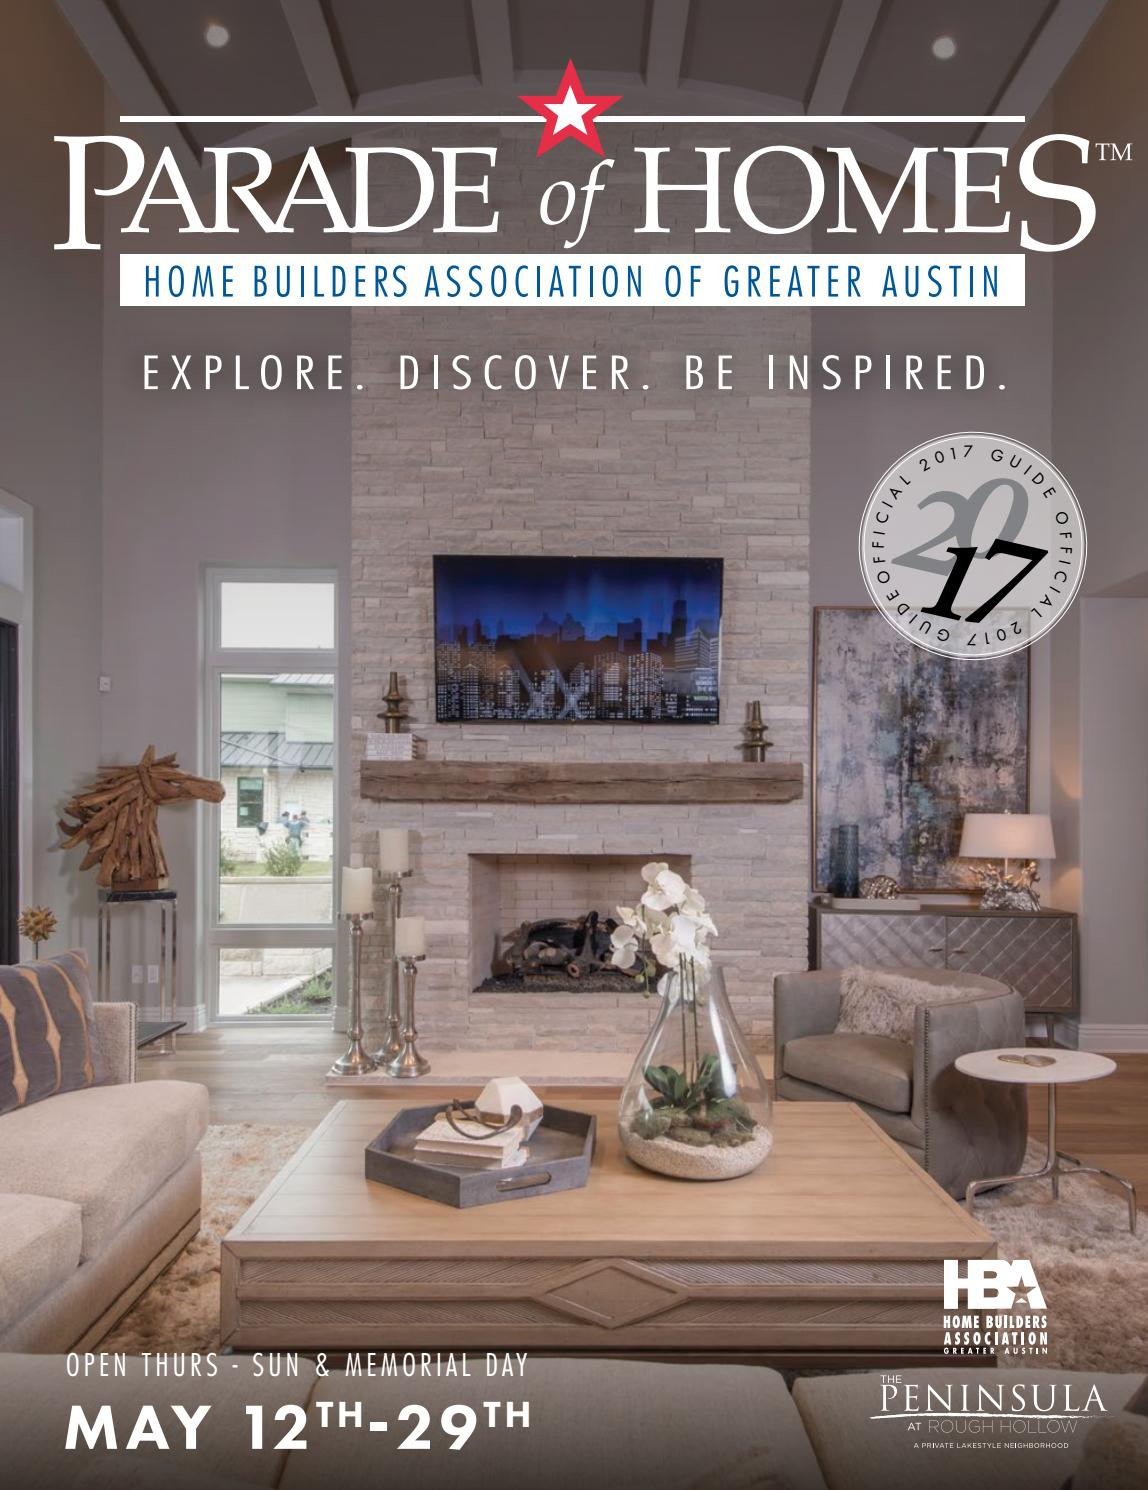 2017 Parade of Homes in The Peninsula